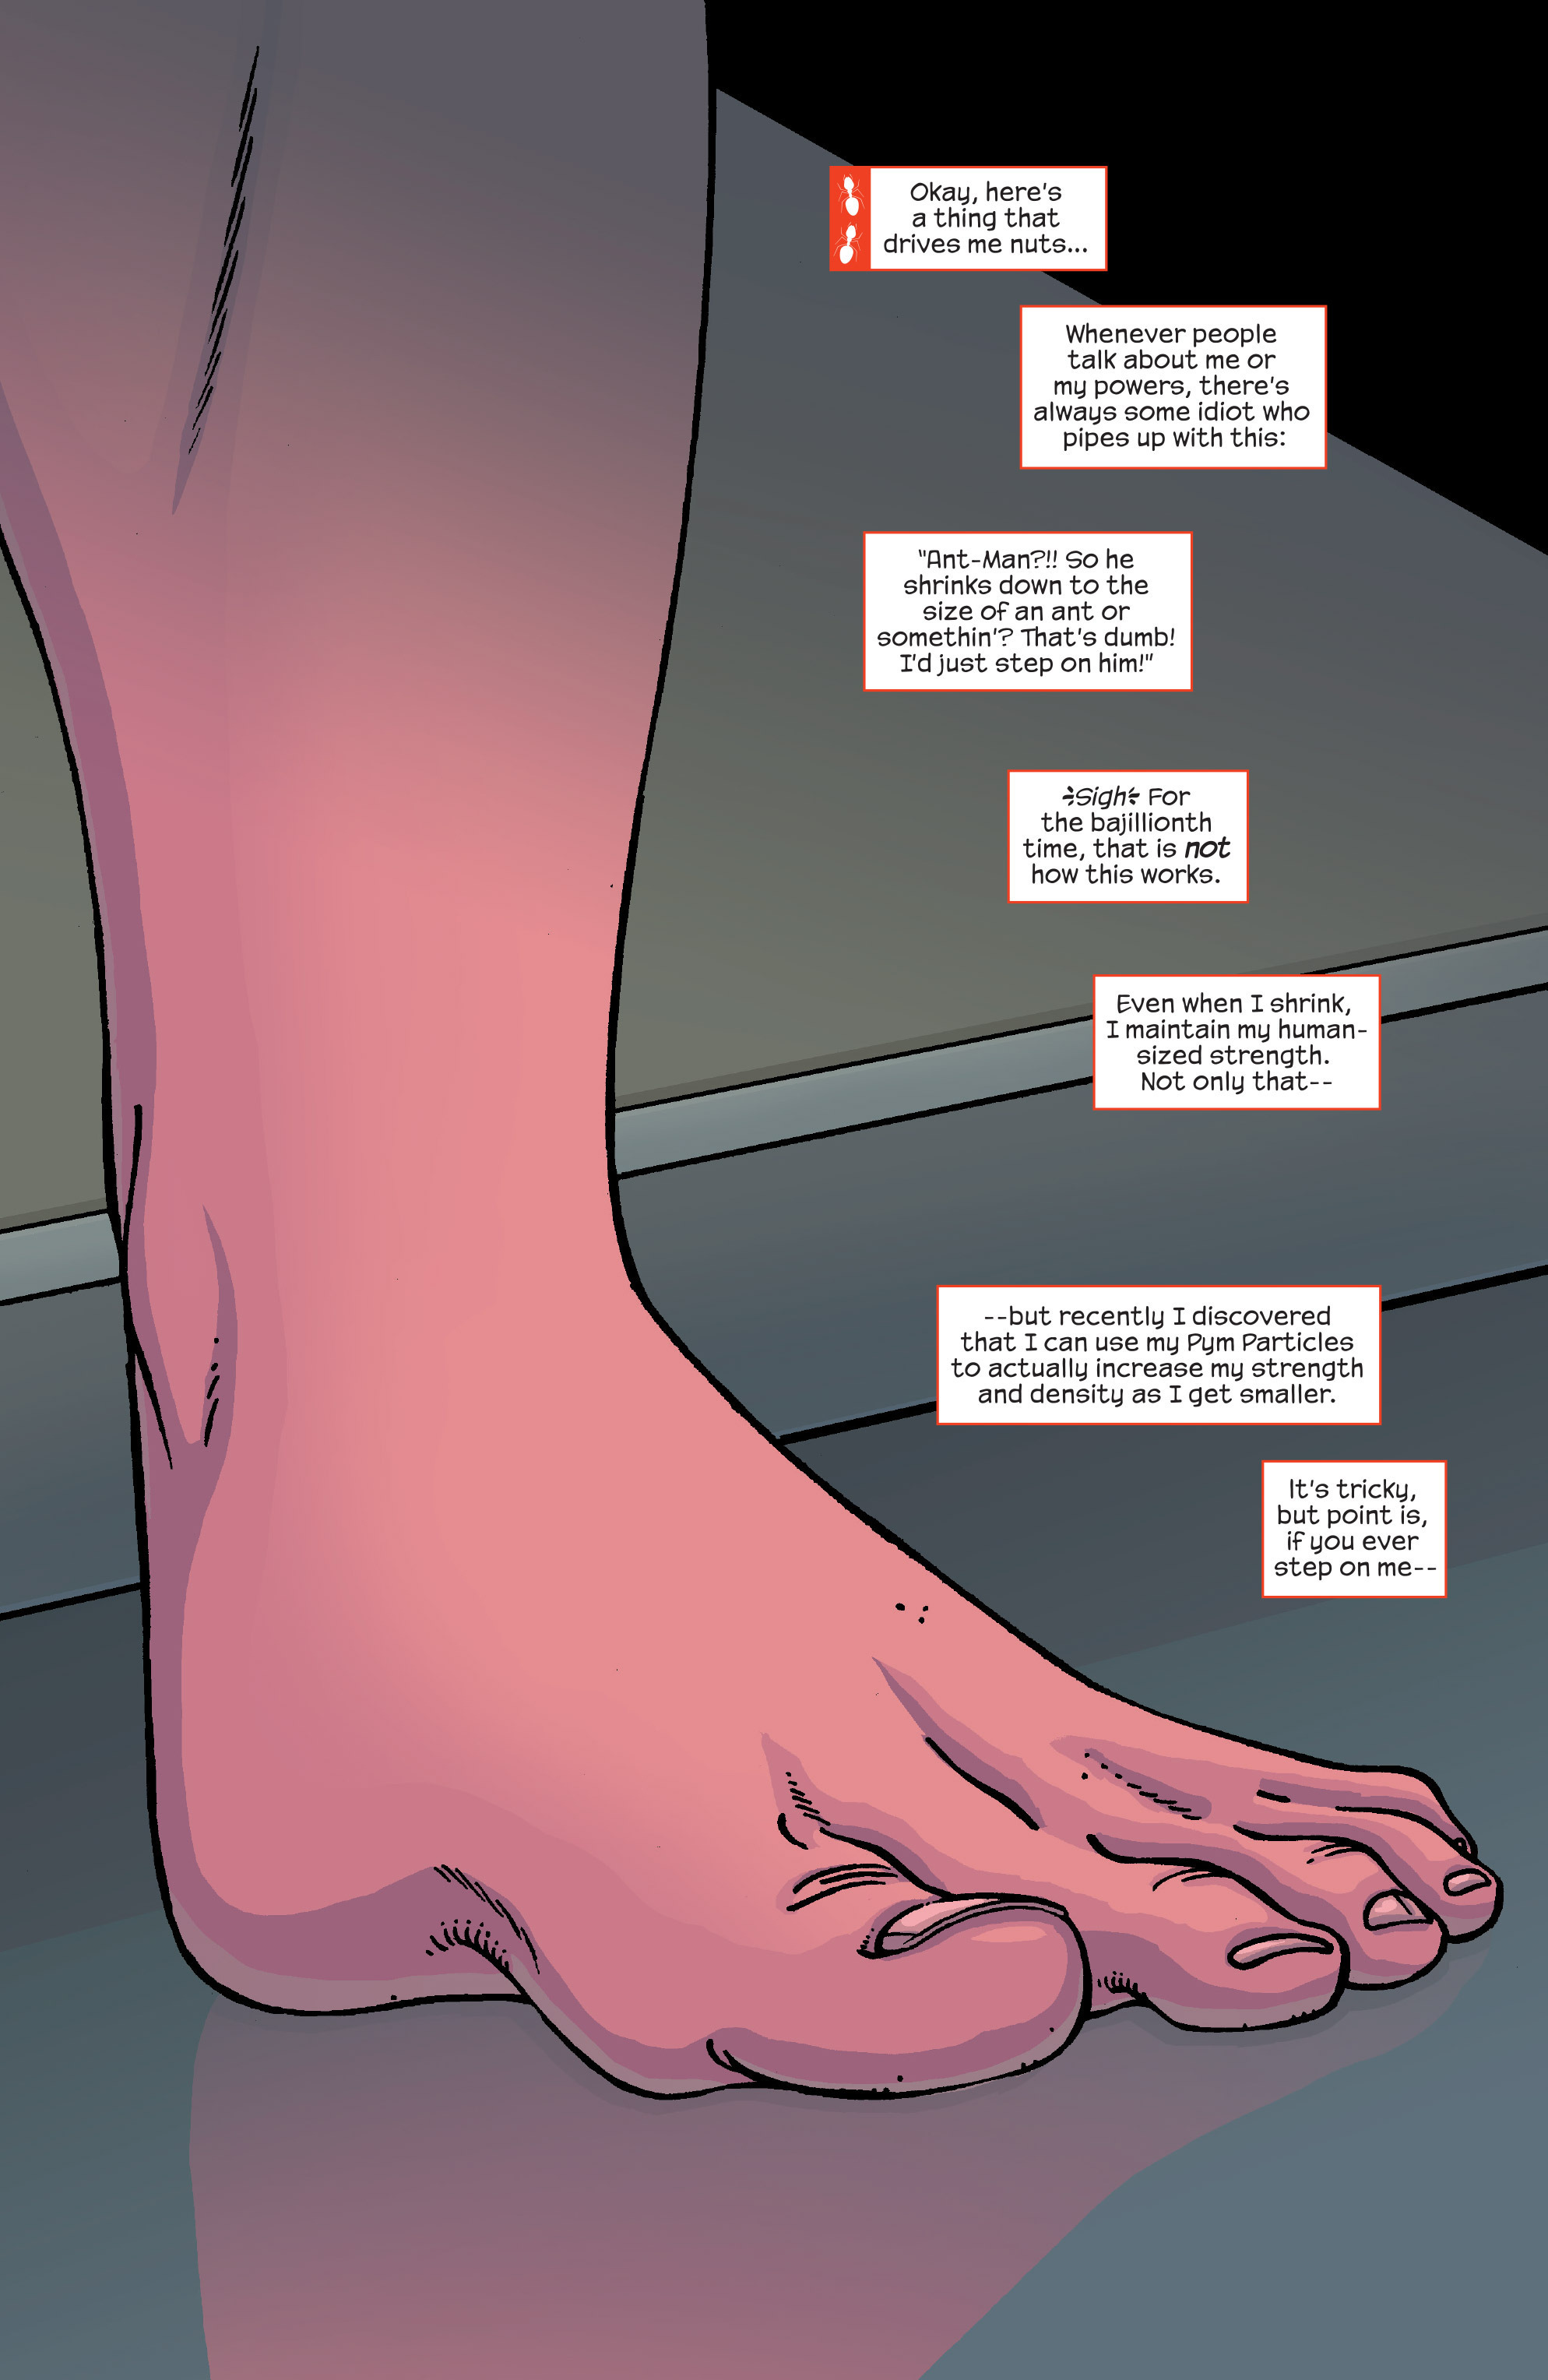 Read online Ant-Man comic -  Issue #5 - 3